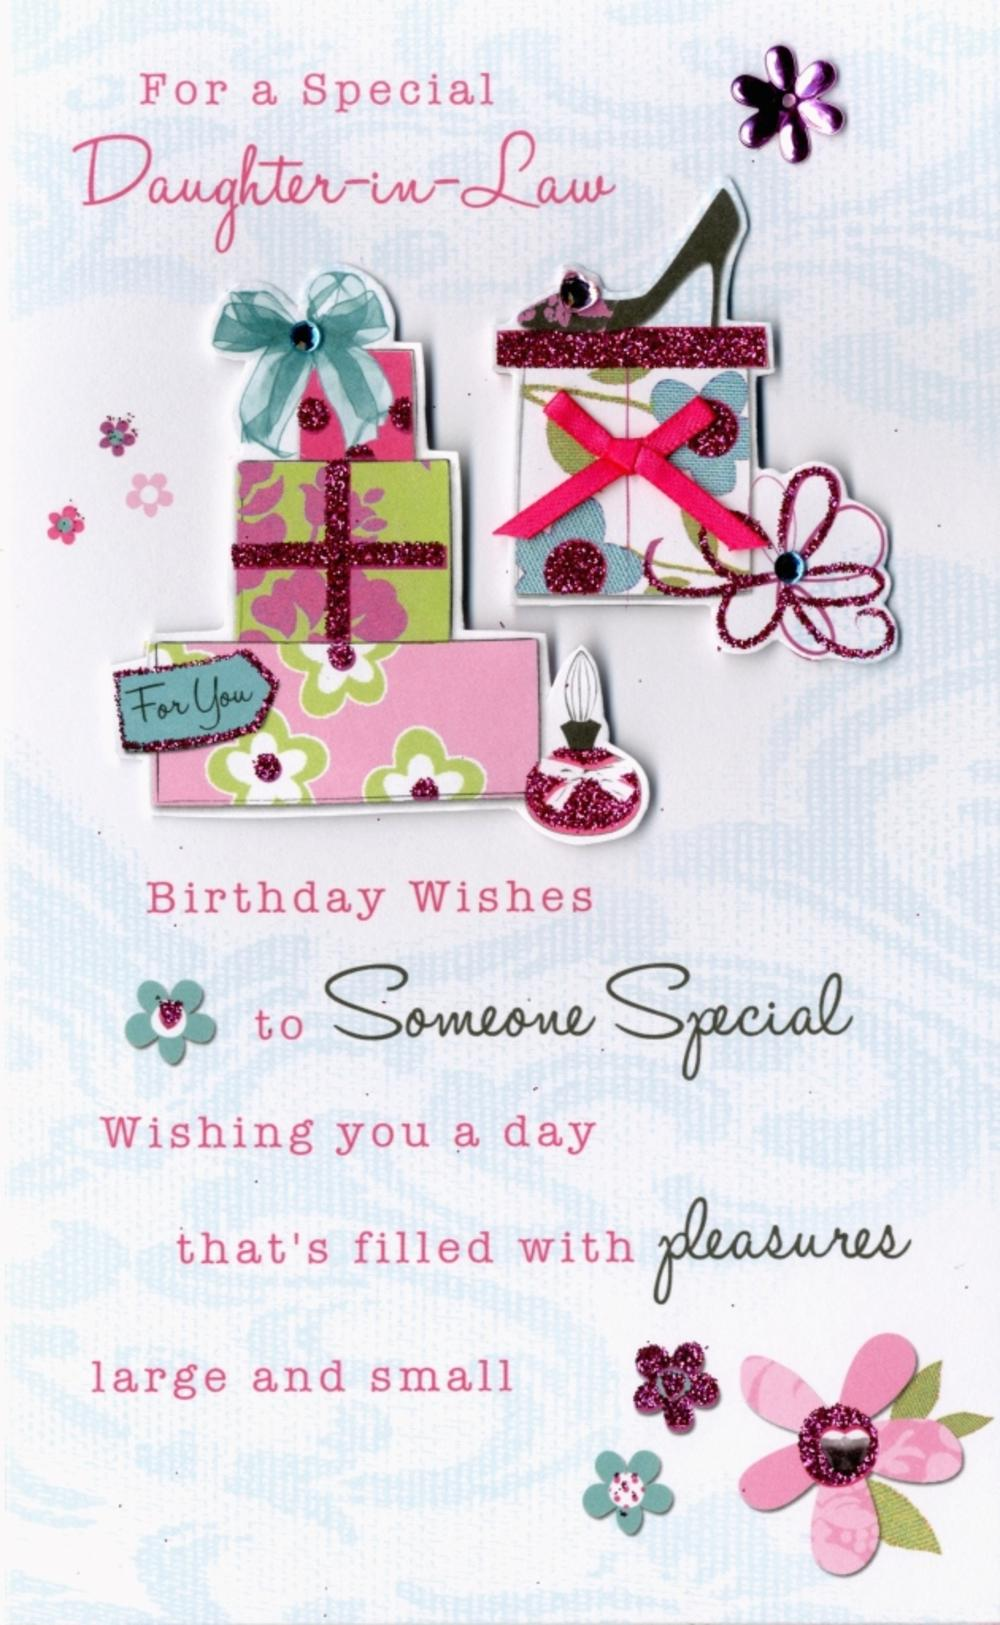 Birthday Cards For Daughter In Law neighborhood party invitations – Happy Birthday Daughter in Law Cards